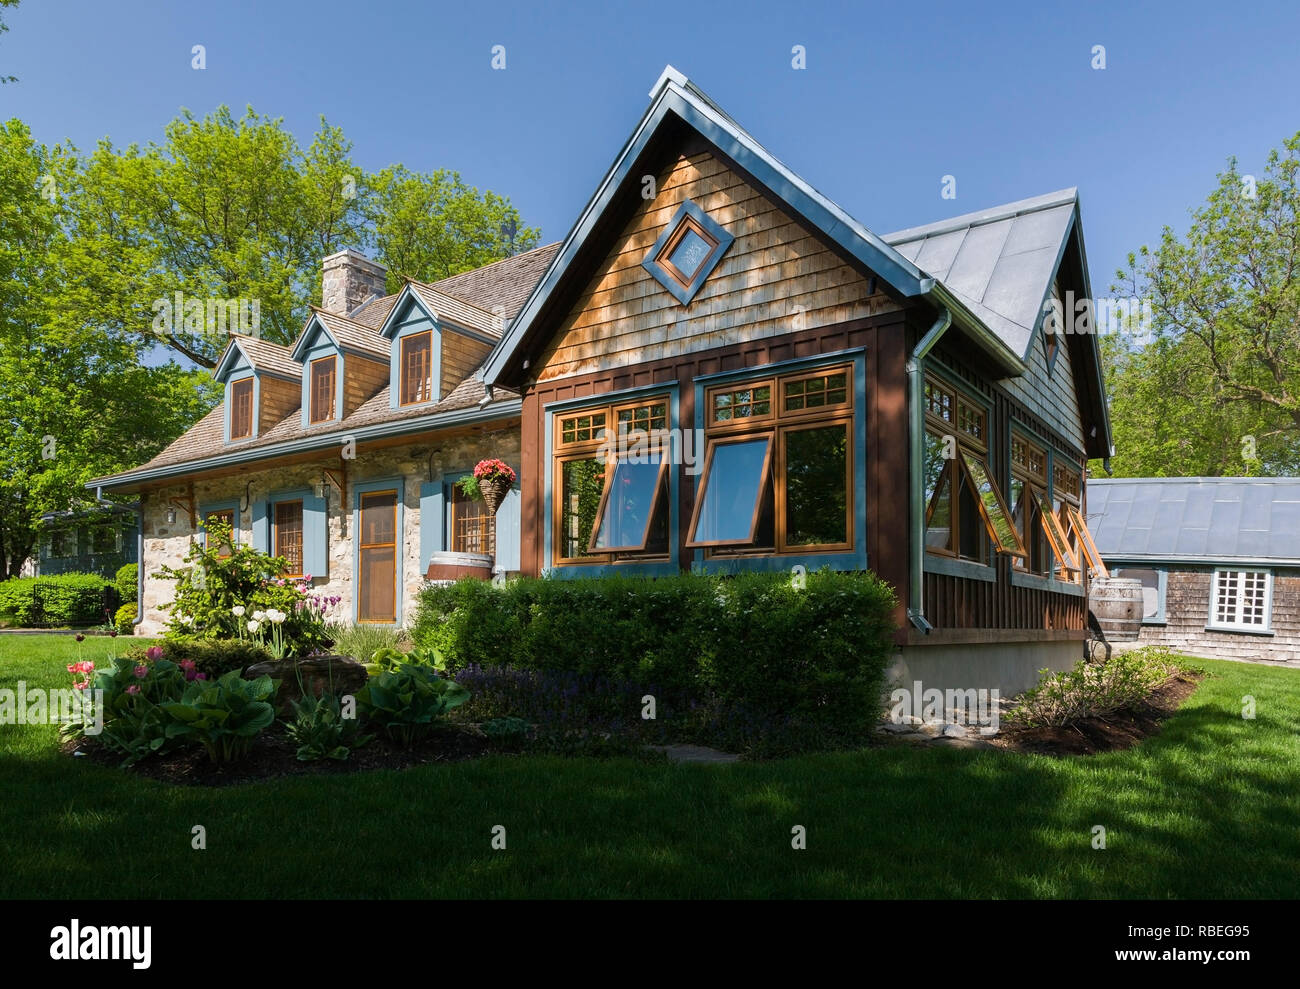 Old circa 1740 Canadiana fieldstone cottage style home facade with new extension in spring - Stock Image